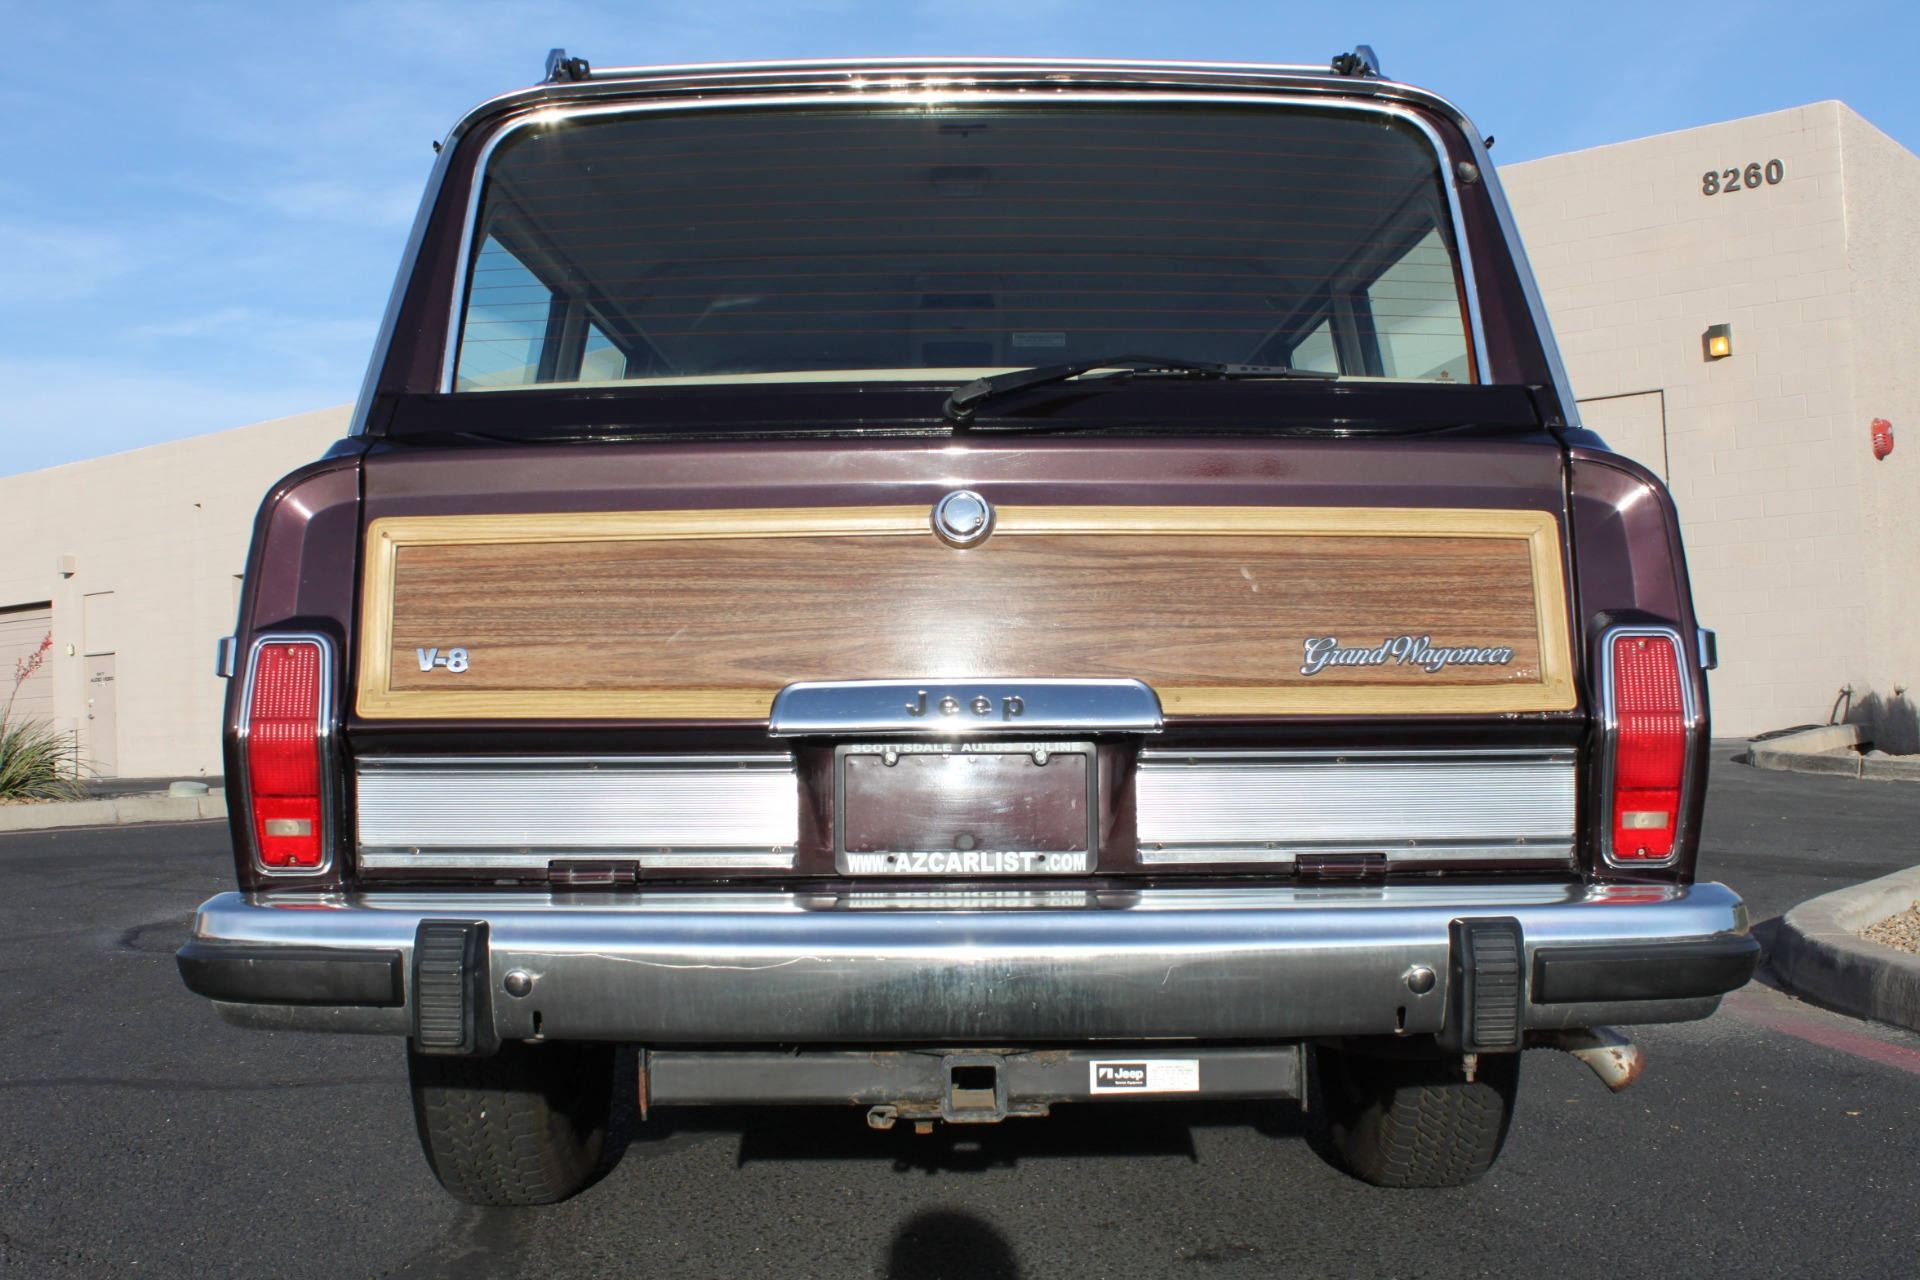 Used-1990-Jeep-Grand-Wagoneer-4X4-Mopar